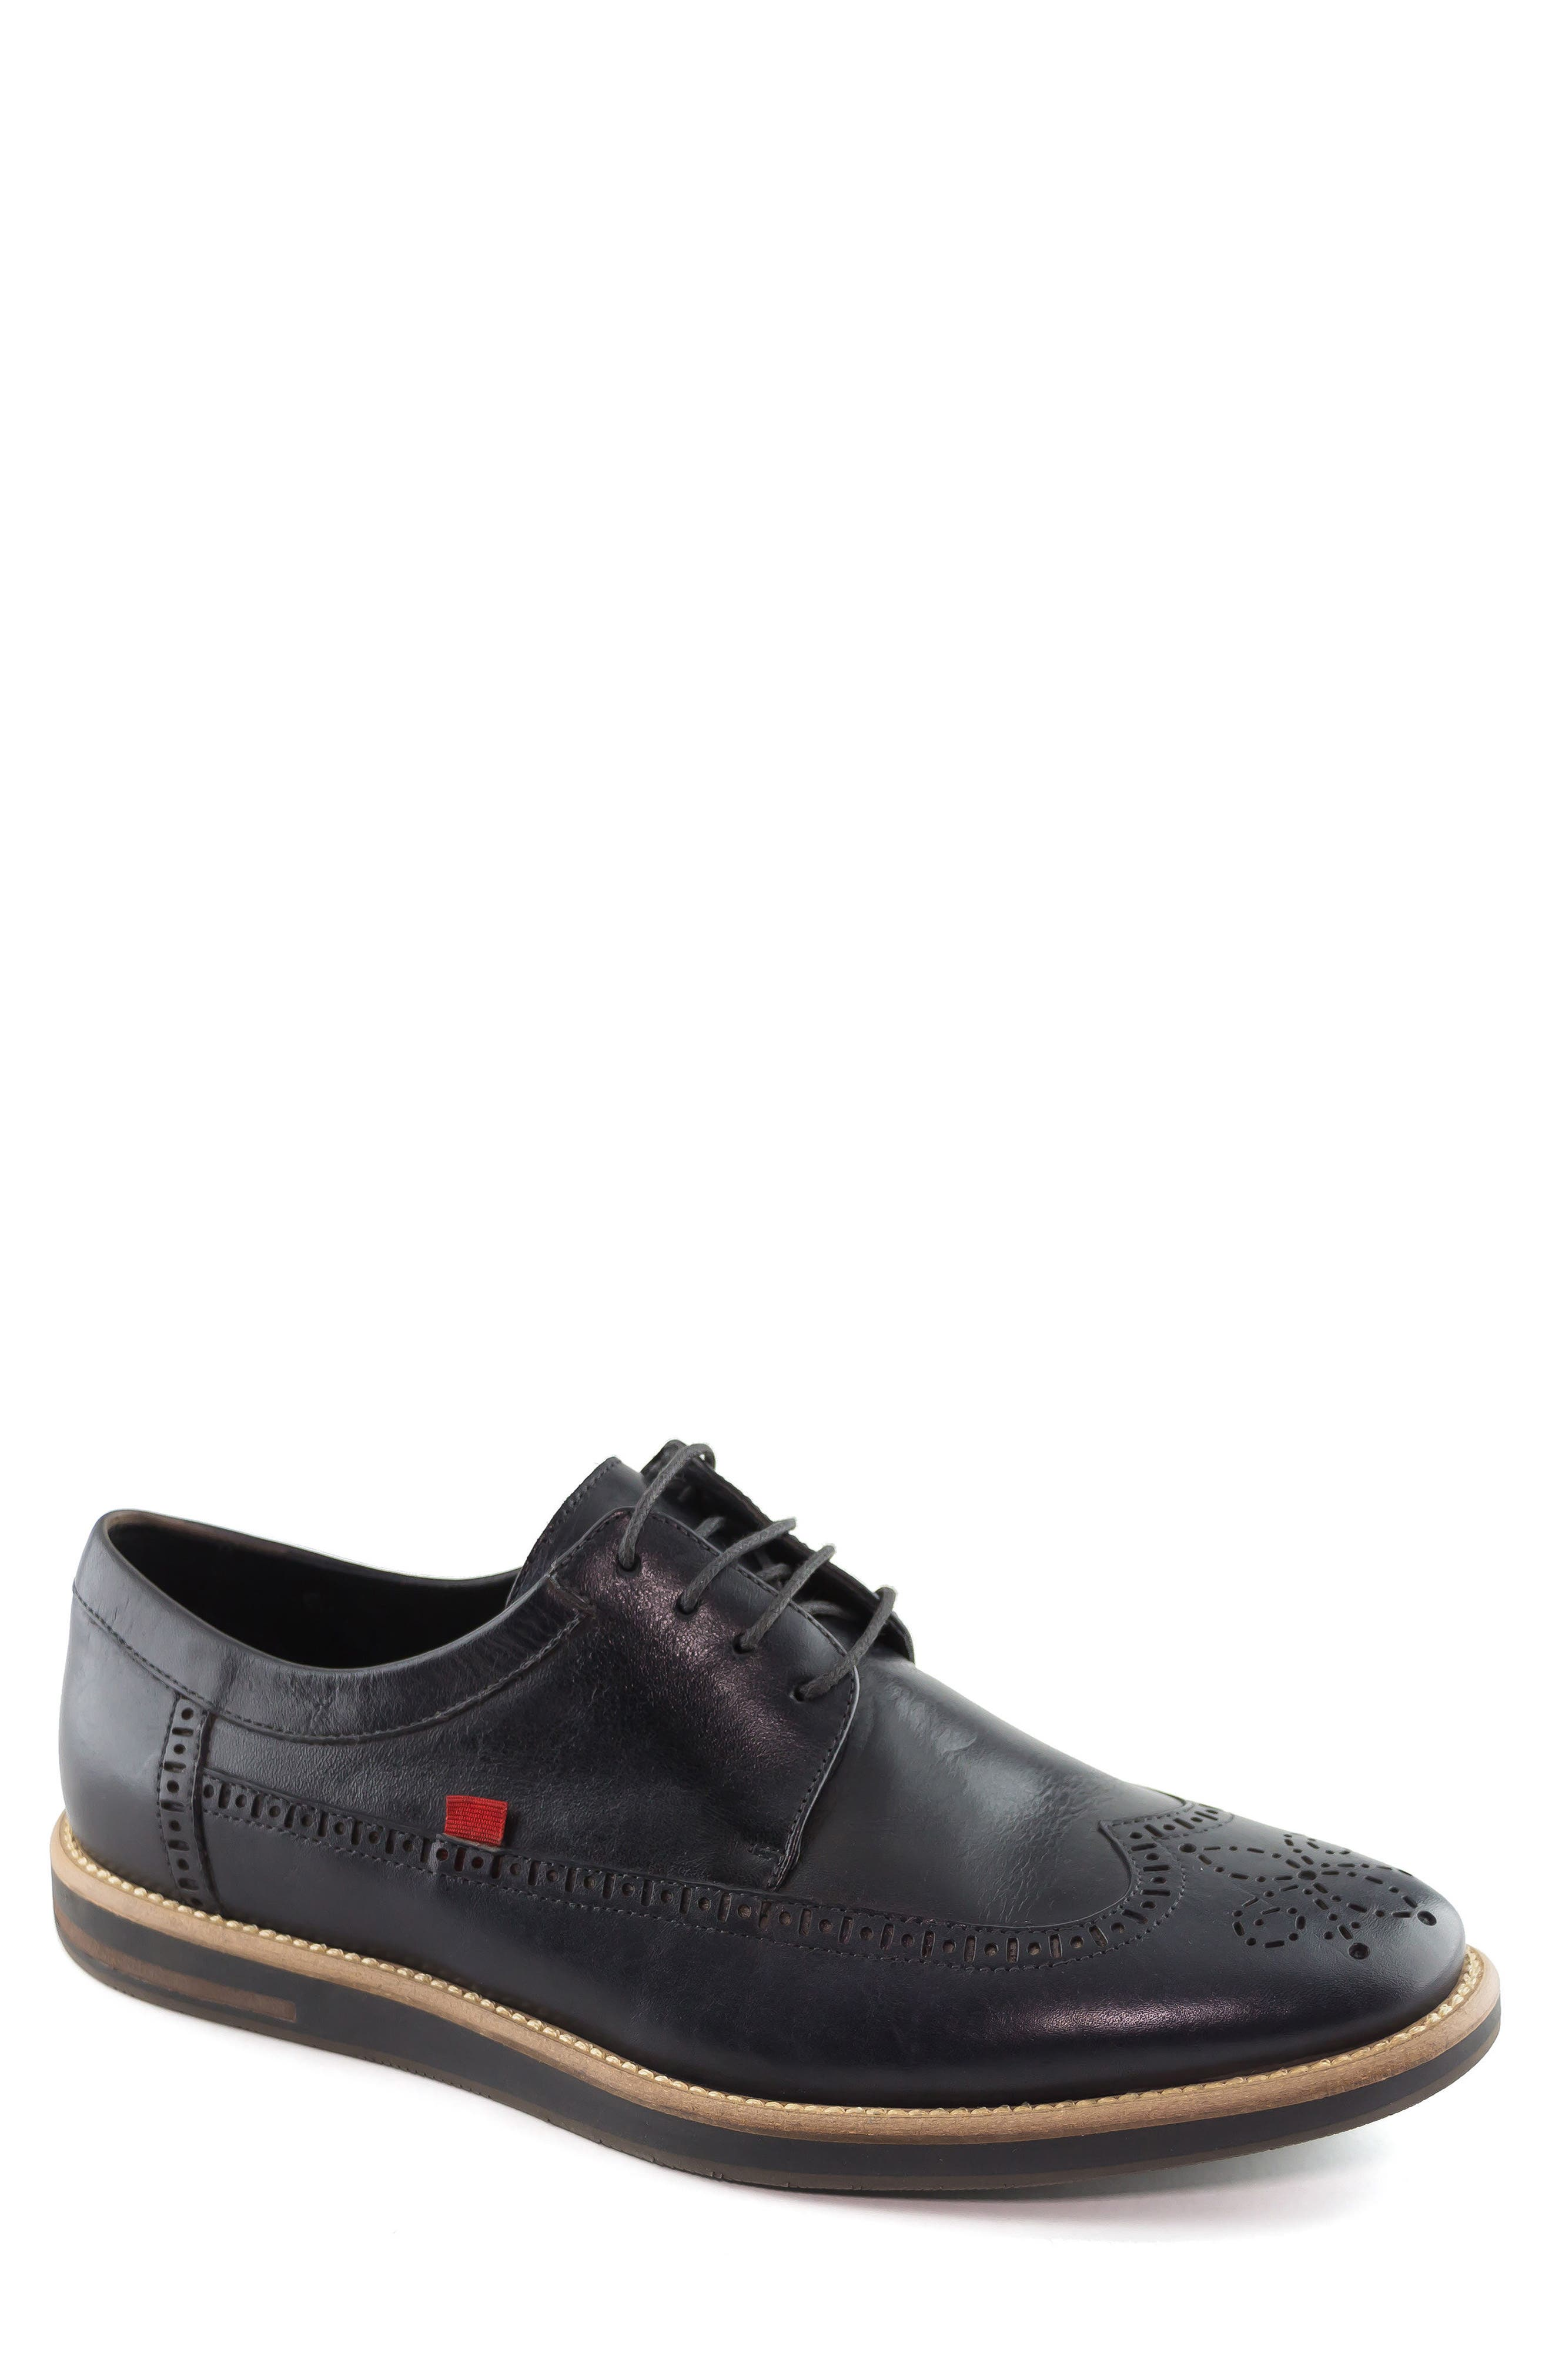 Marc Joseph New Yrok NYC Wingtip,                             Main thumbnail 1, color,